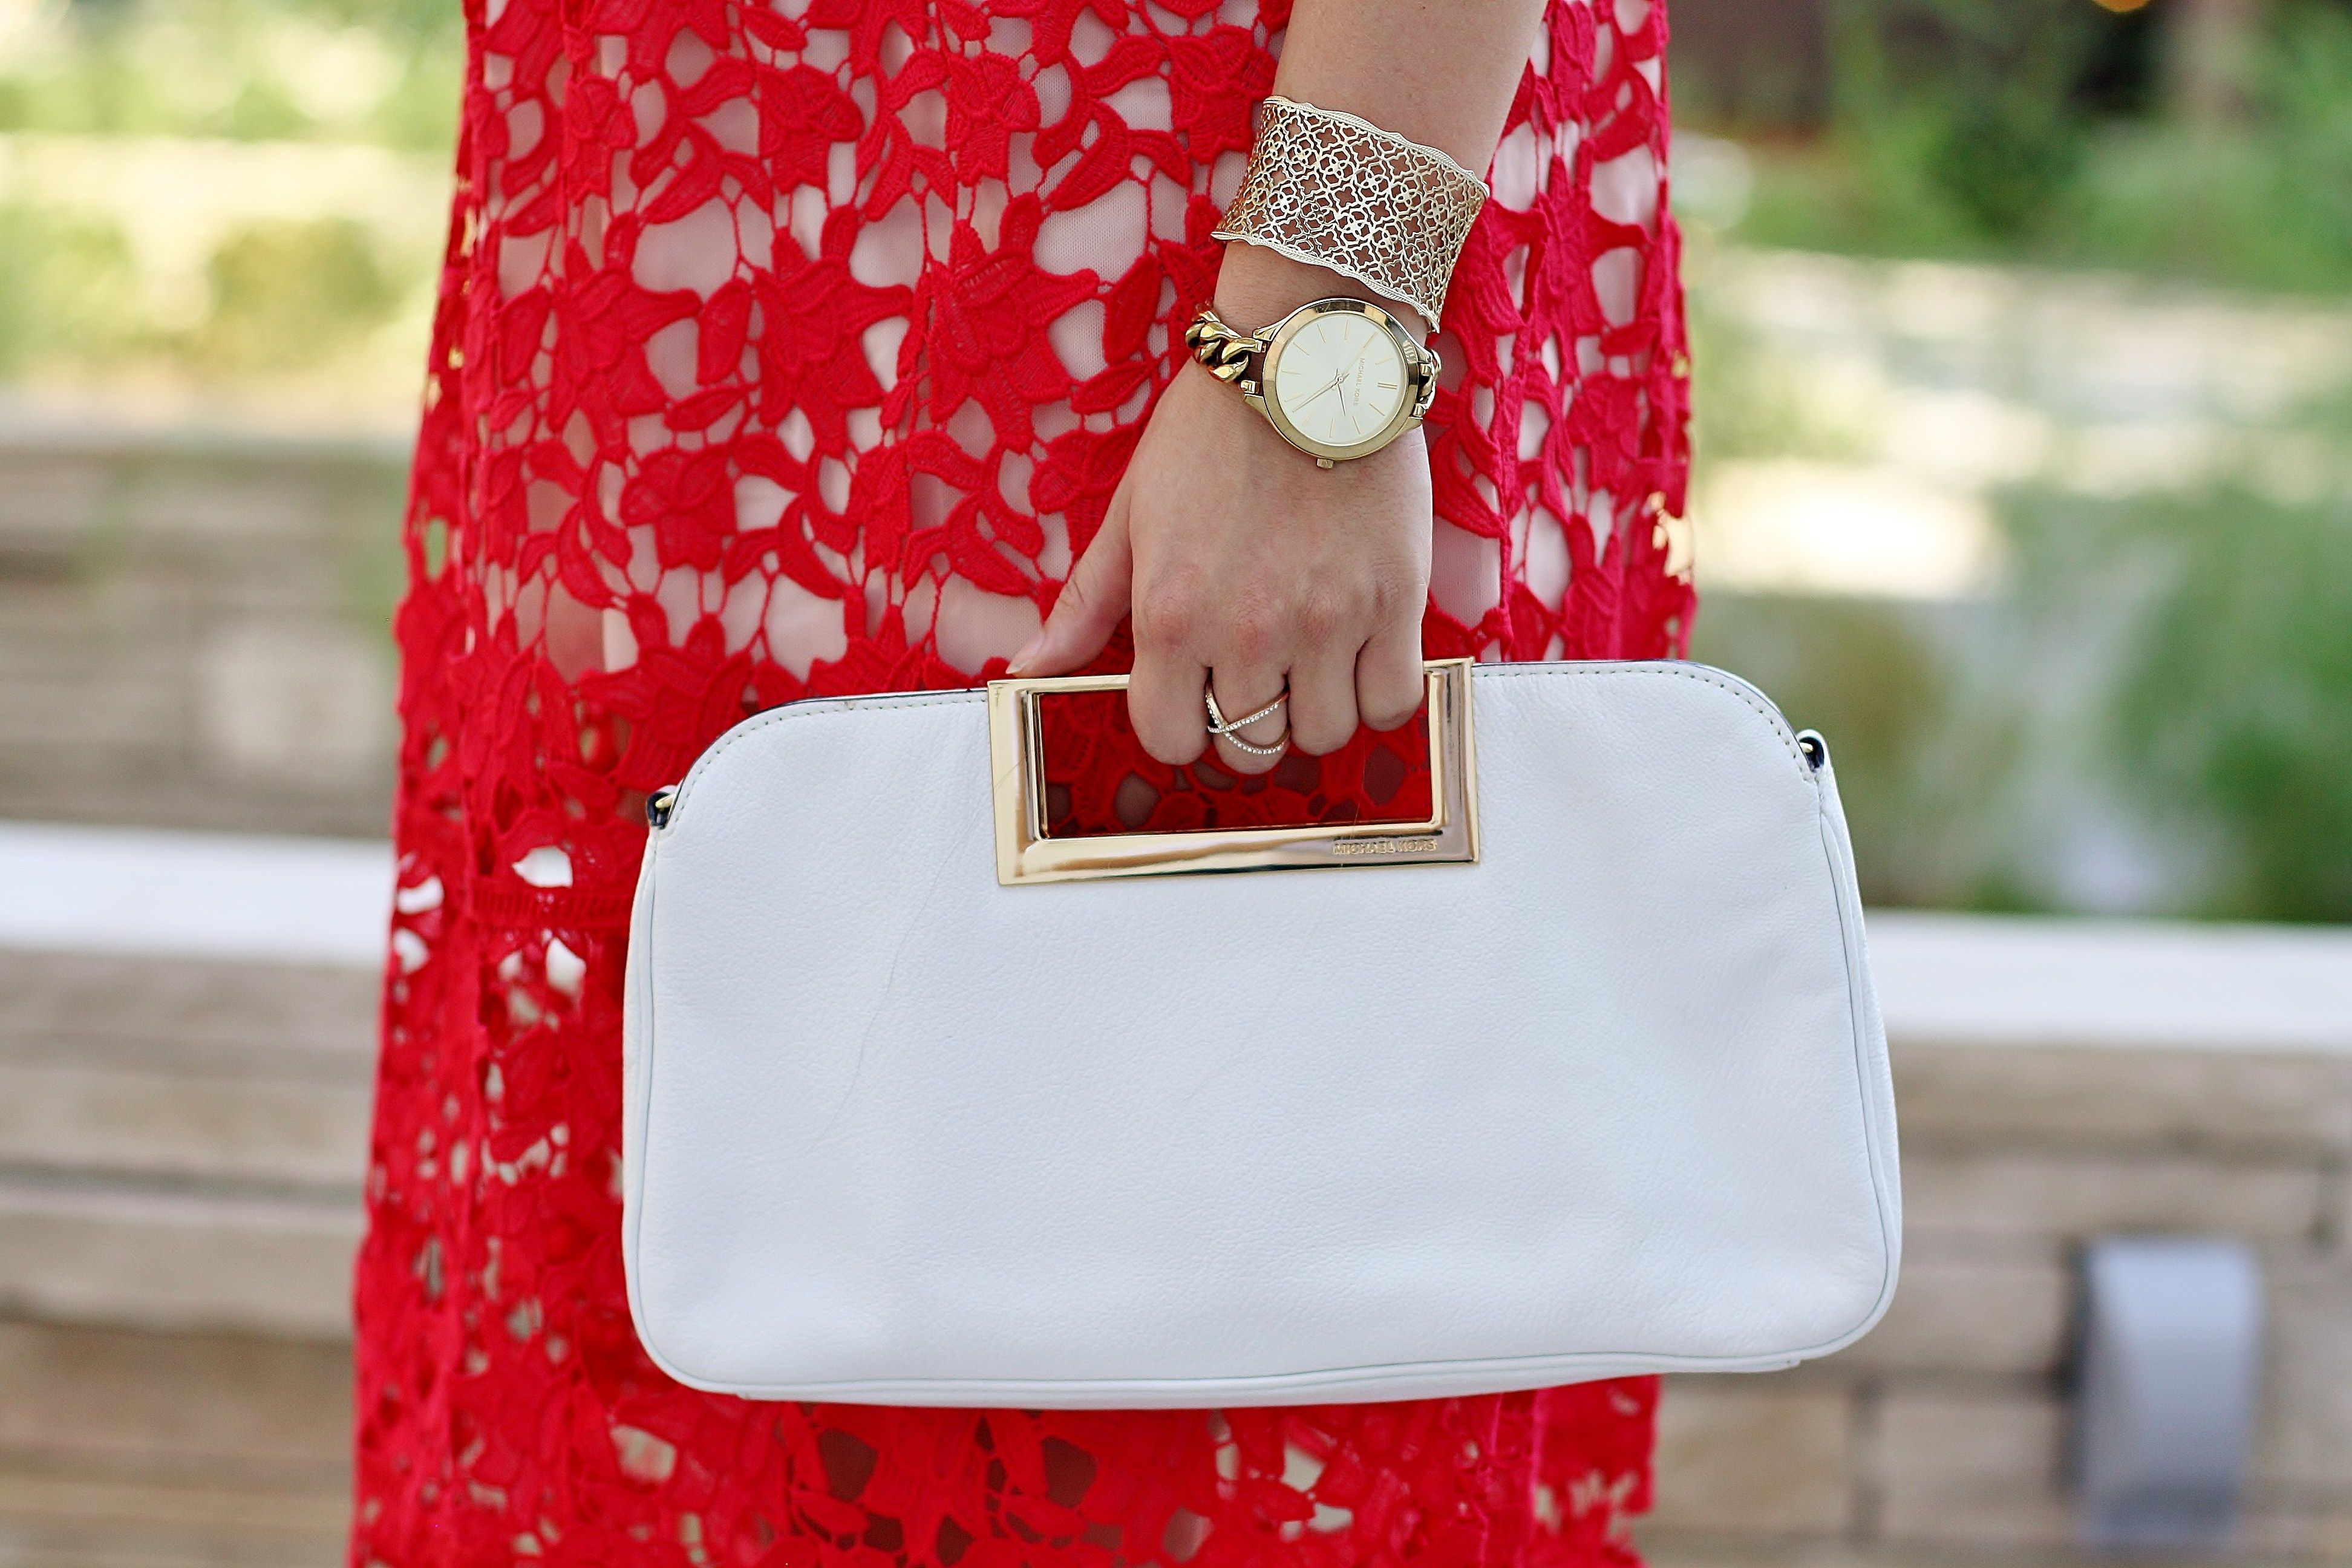 Holiday Prep Checklist & Timeline;  how to get ready for the holiday;s red holiday dress; Christmas dress; Christmas prep; white taseel earrings; white clutch; black rockstud pumps